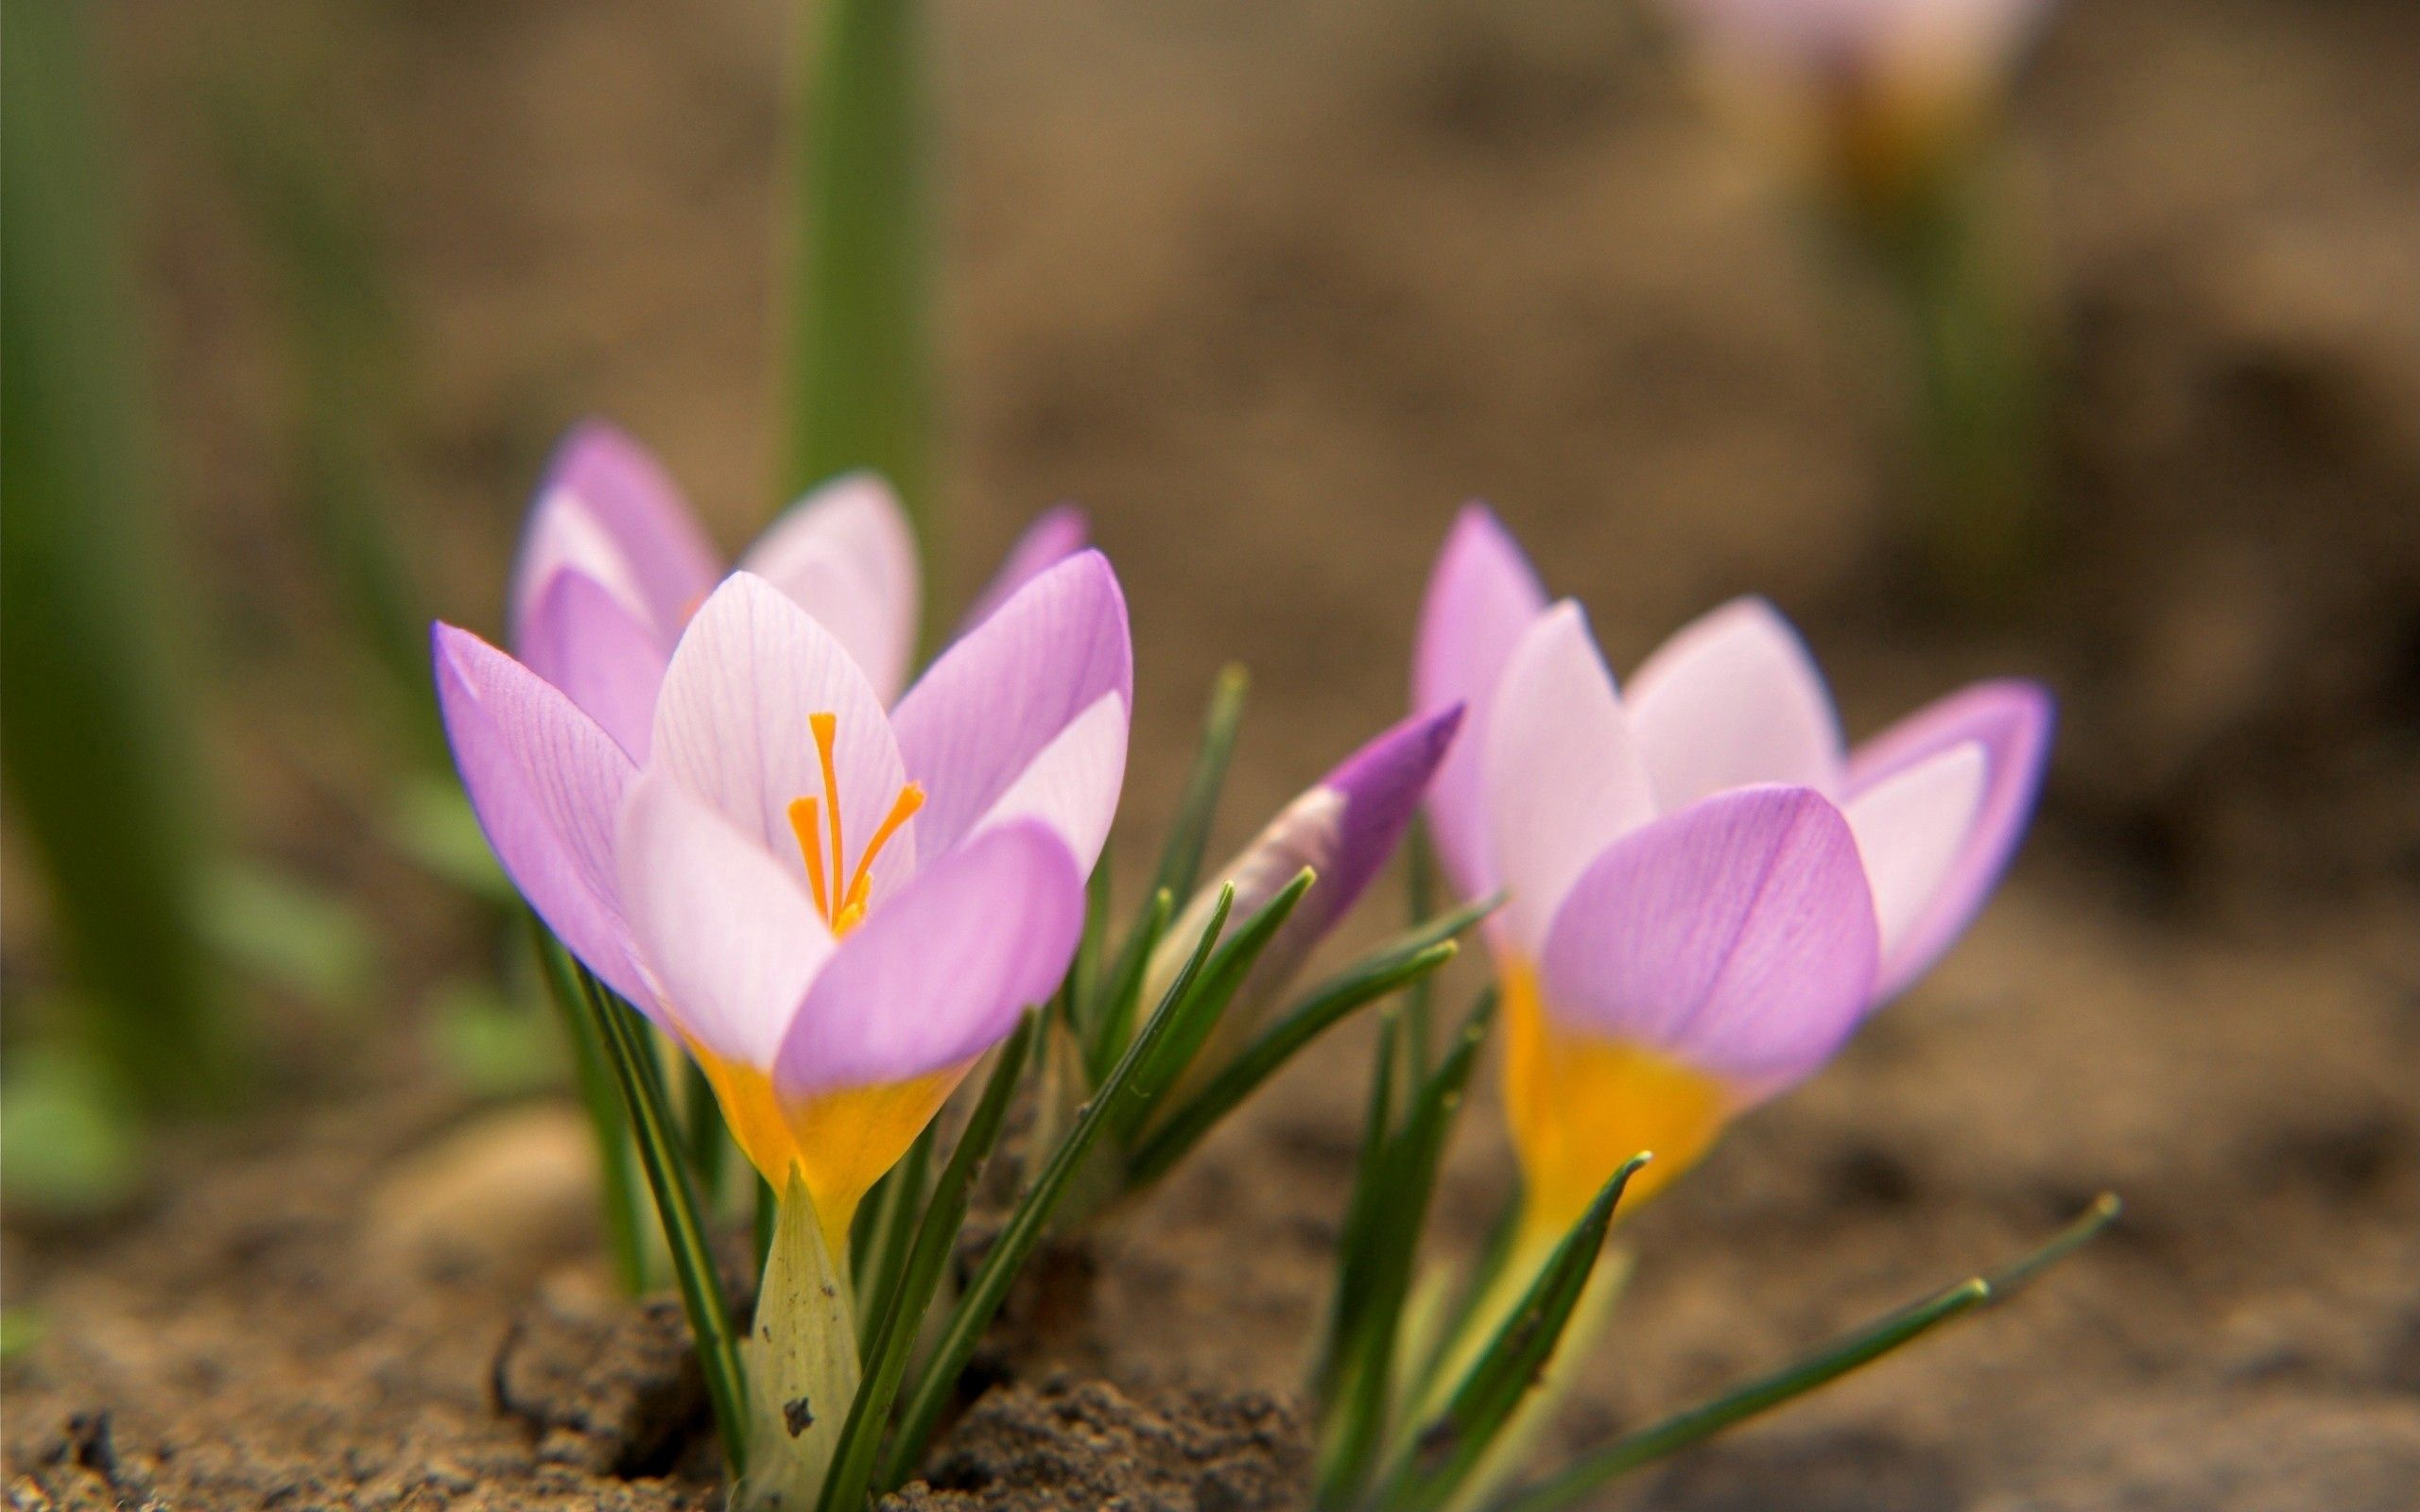 84370 download wallpaper Macro, Snowdrops, Mud, Dirt, Petals, Leaves, Flowers screensavers and pictures for free